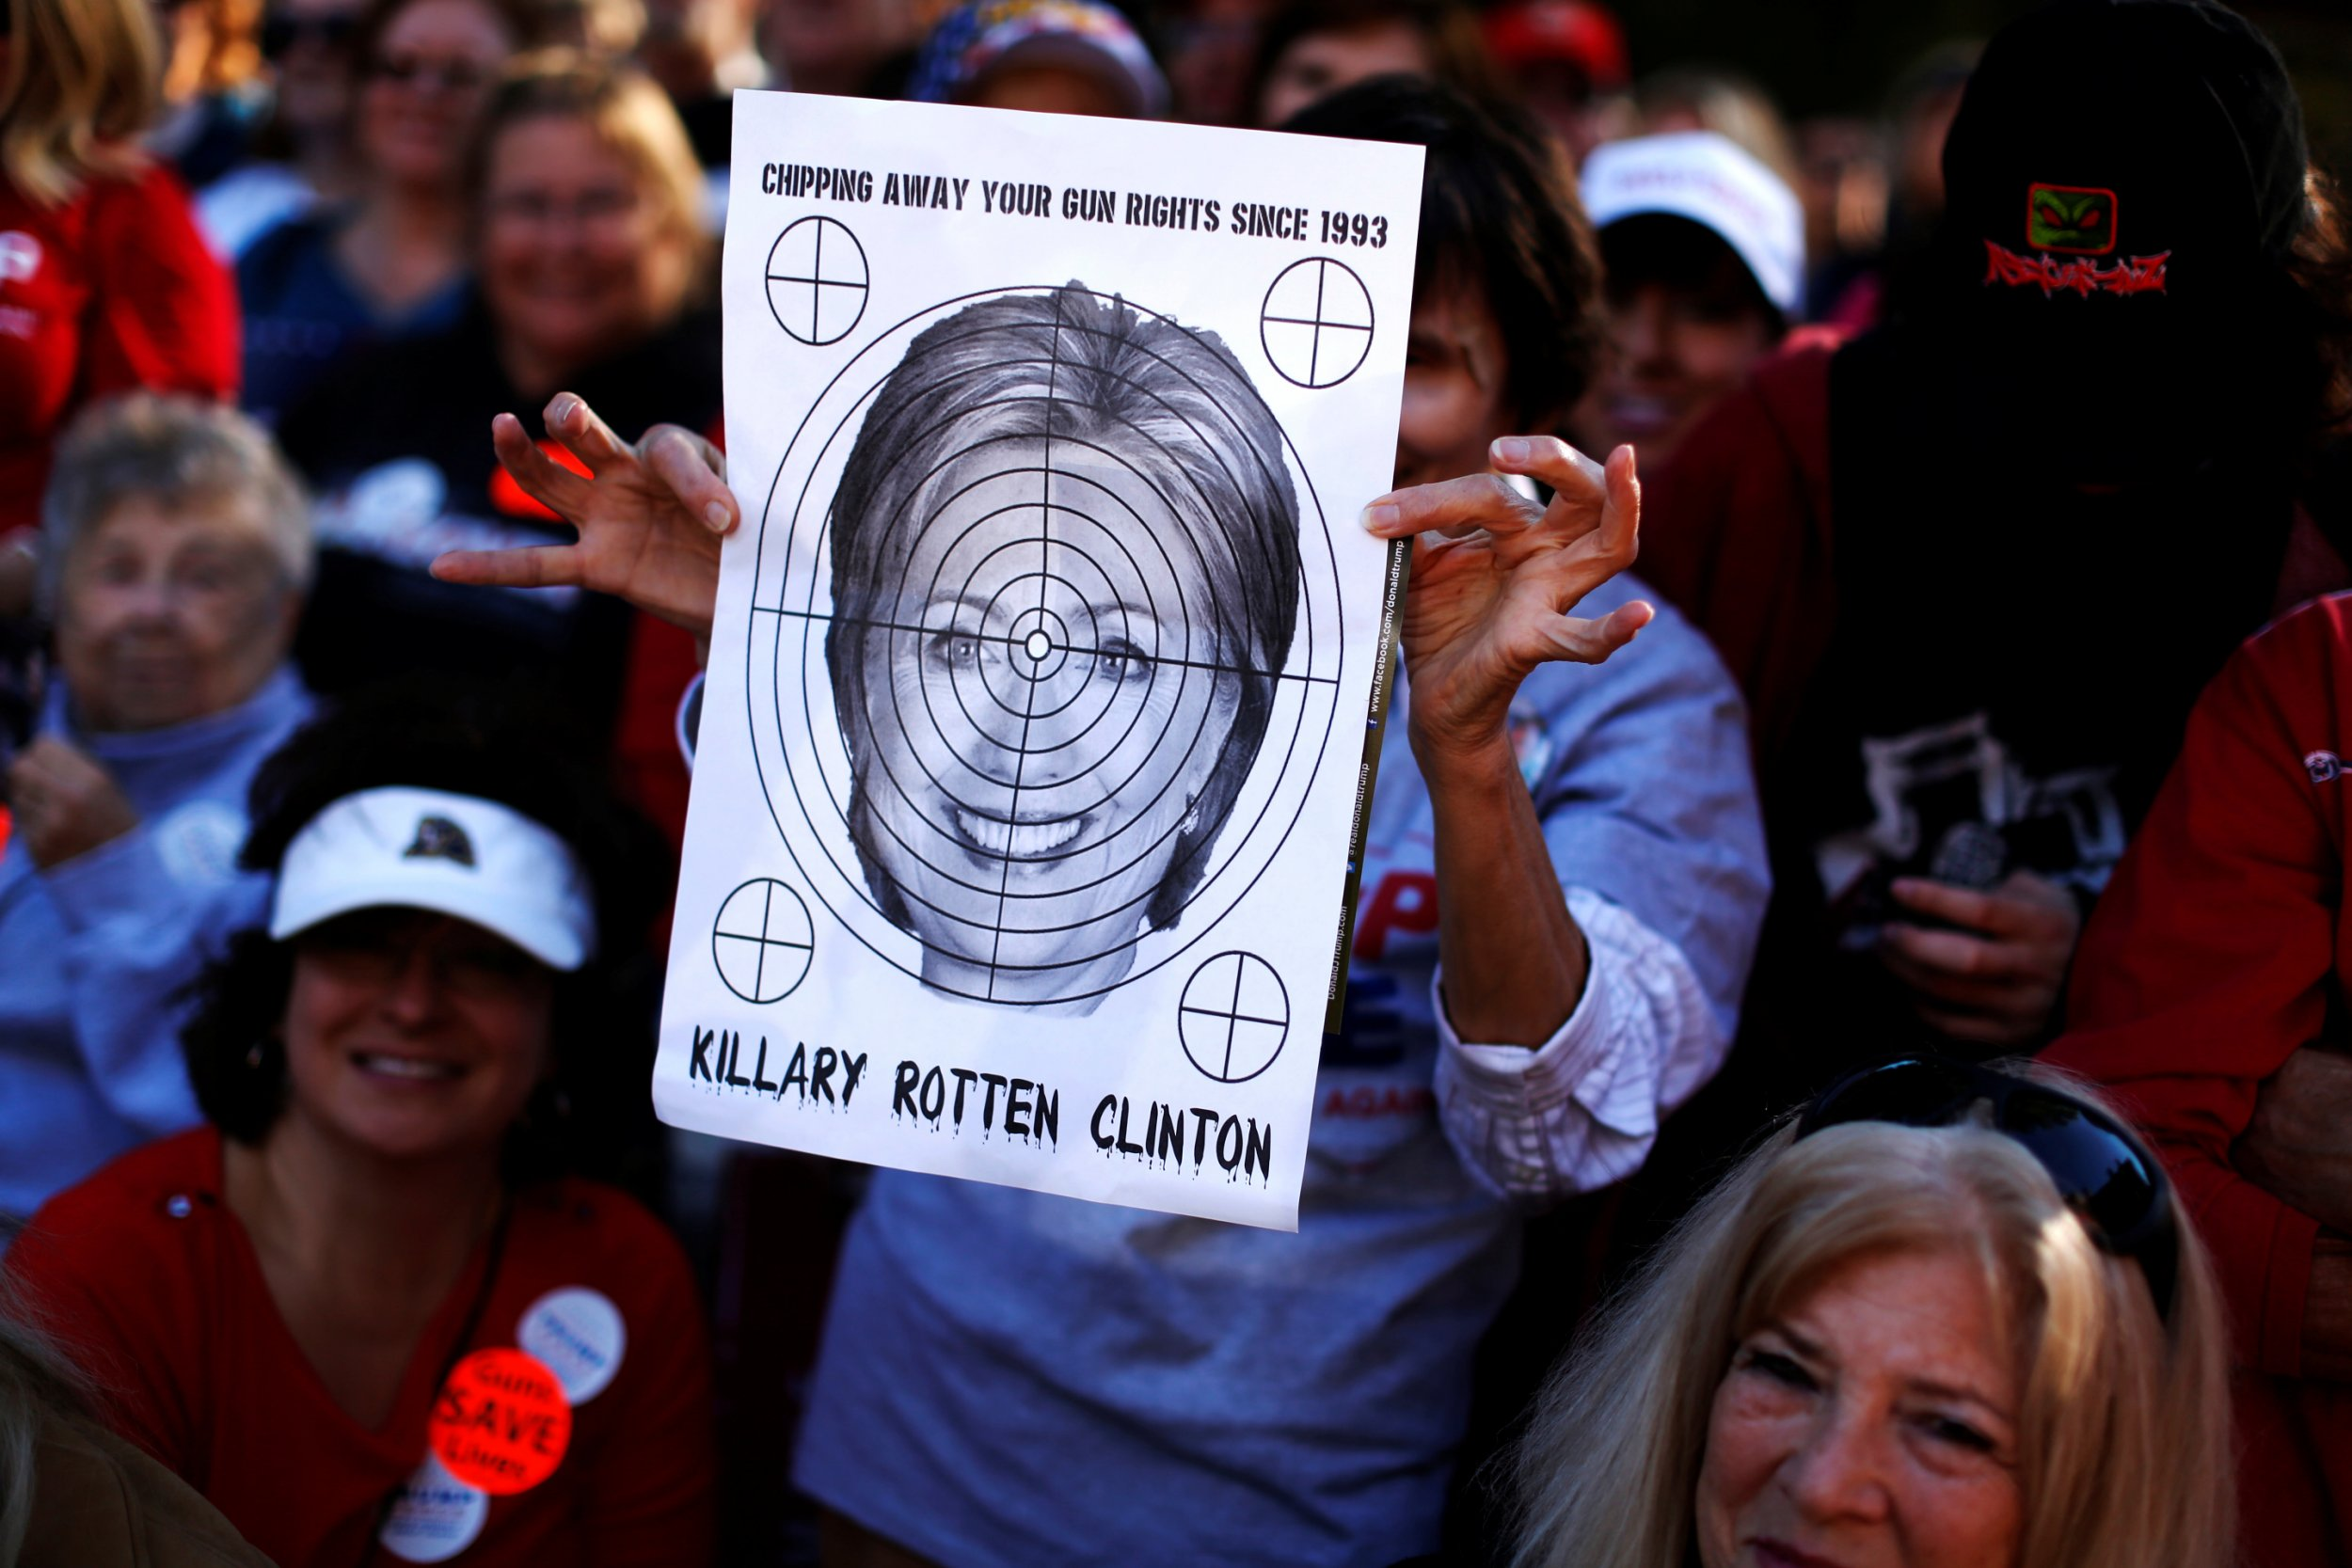 A supporter of Republican U.S. presidential nominee Donald Trump holds a shooting target with image of Hillary Clinton at a campaign rally in Virginia Beach, Virginia, U.S. October 22, 2016. REUTERS/Jonathan Ernst - RTX2Q0YZ